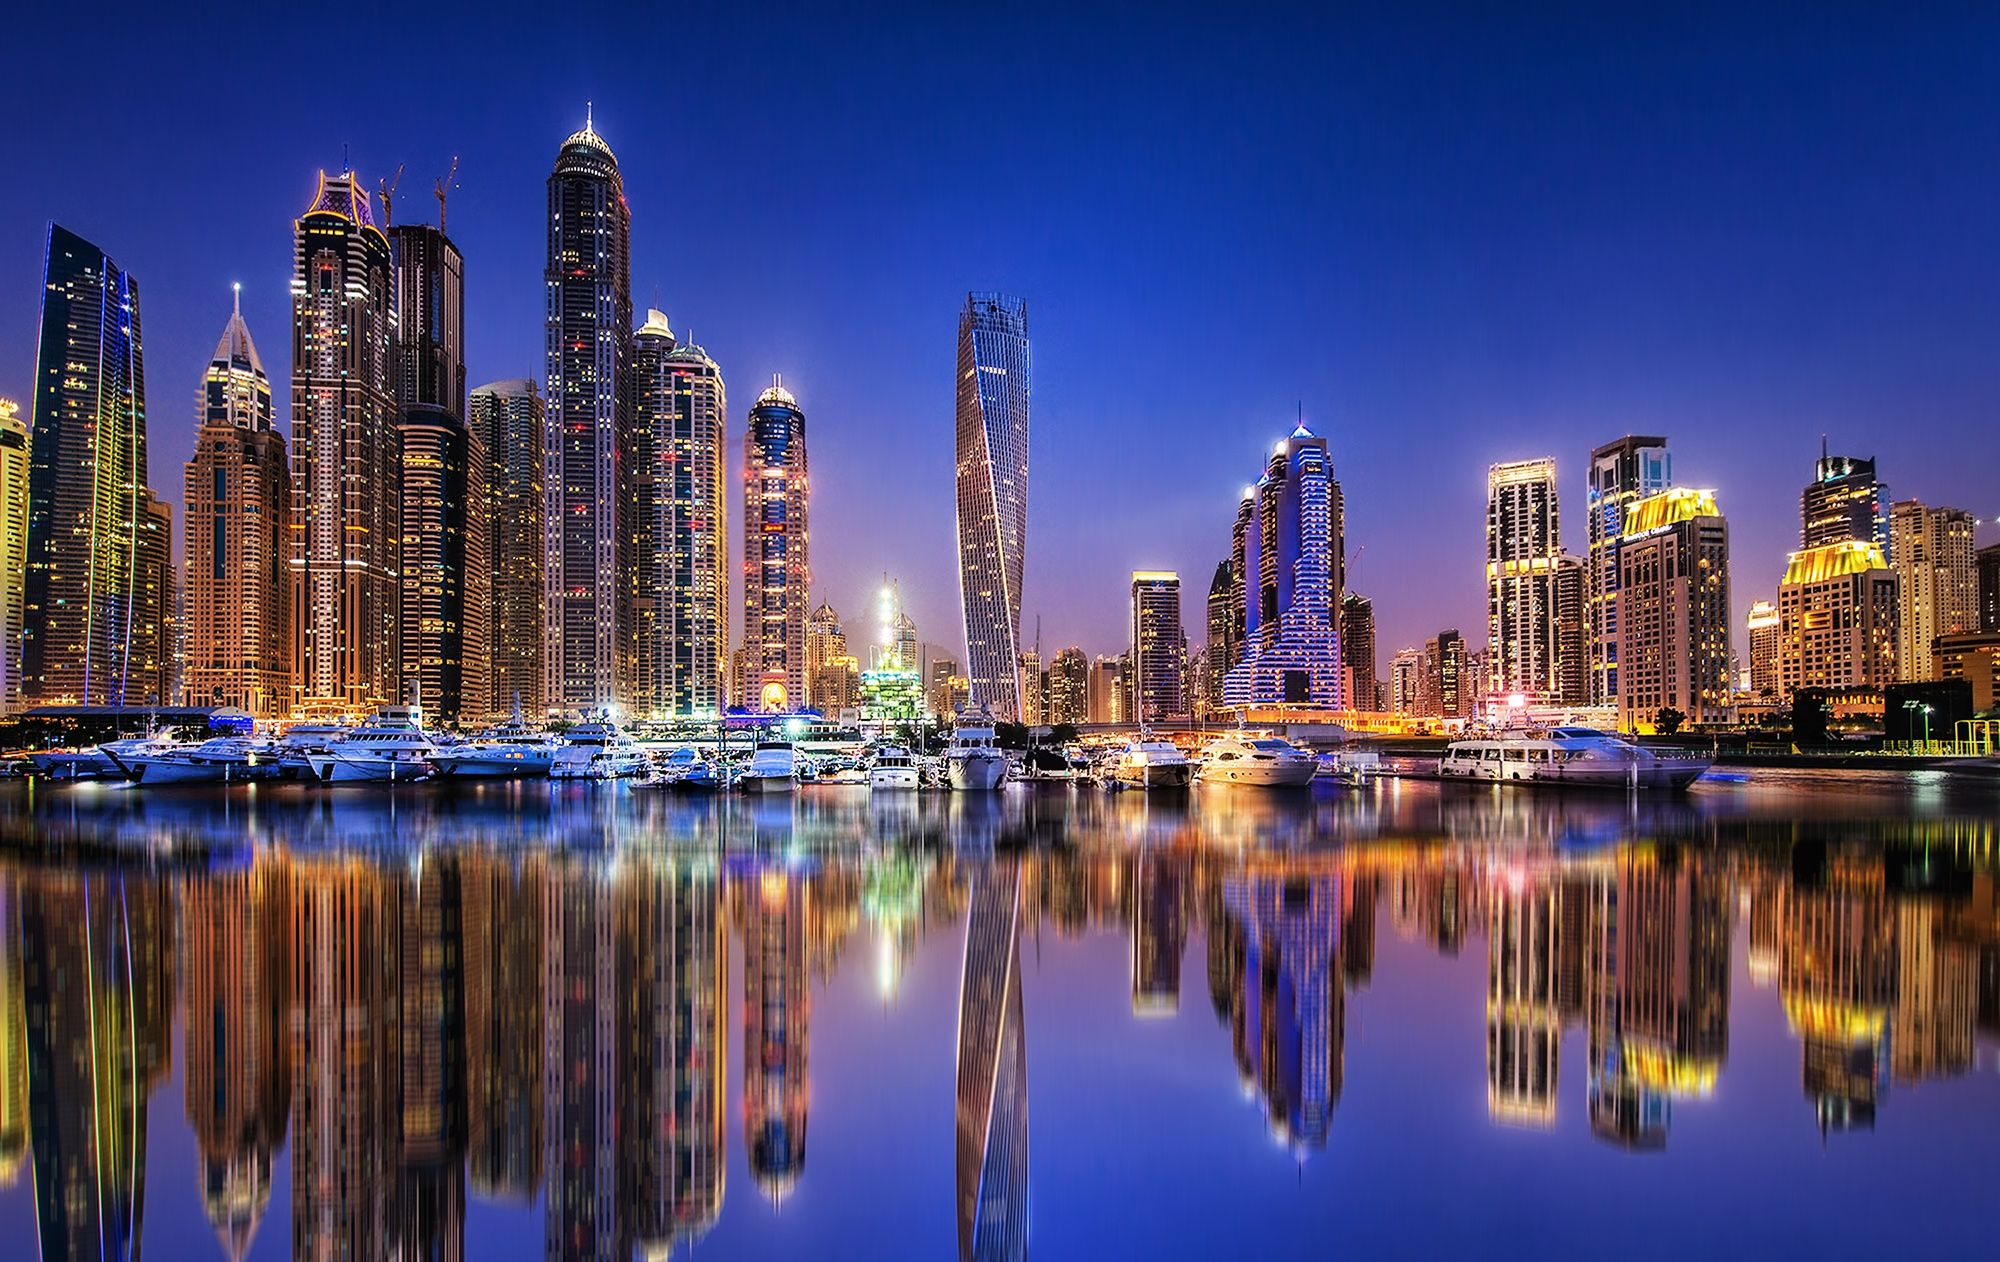 Marina Nights by Mohamed Raouf on 500px